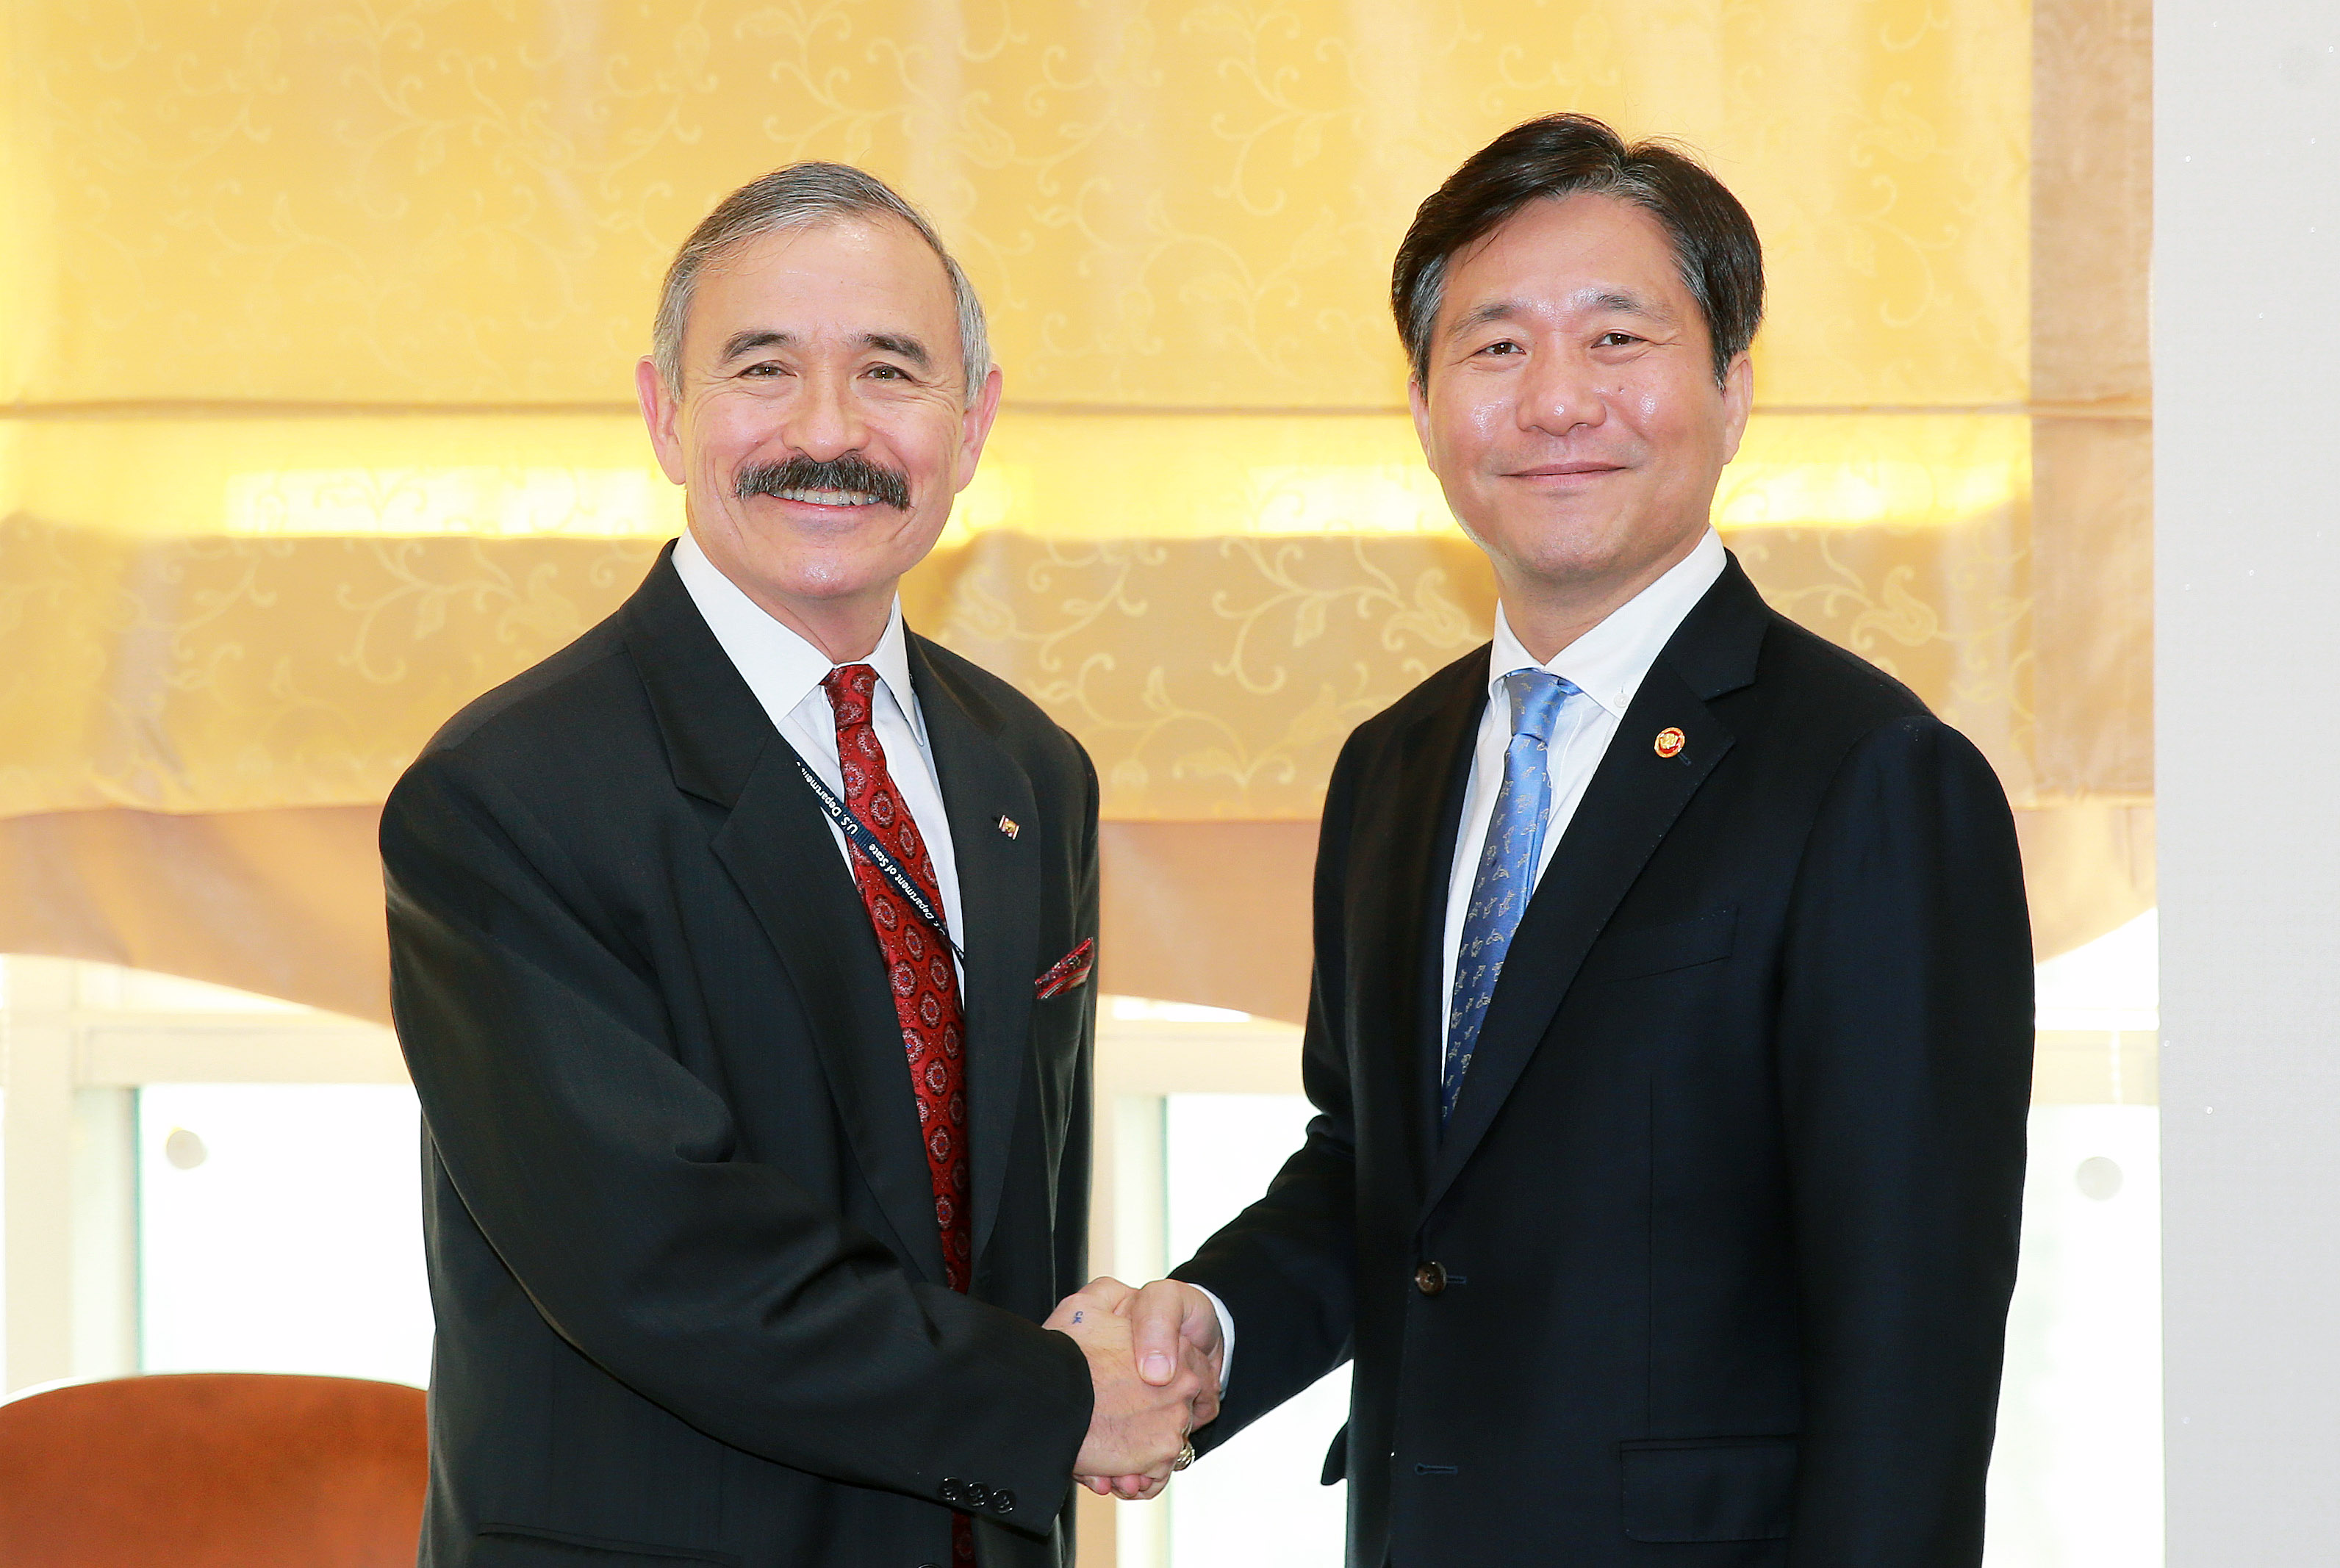 Minister Sung meets with U.S. Ambassador to Korea Harry Harris